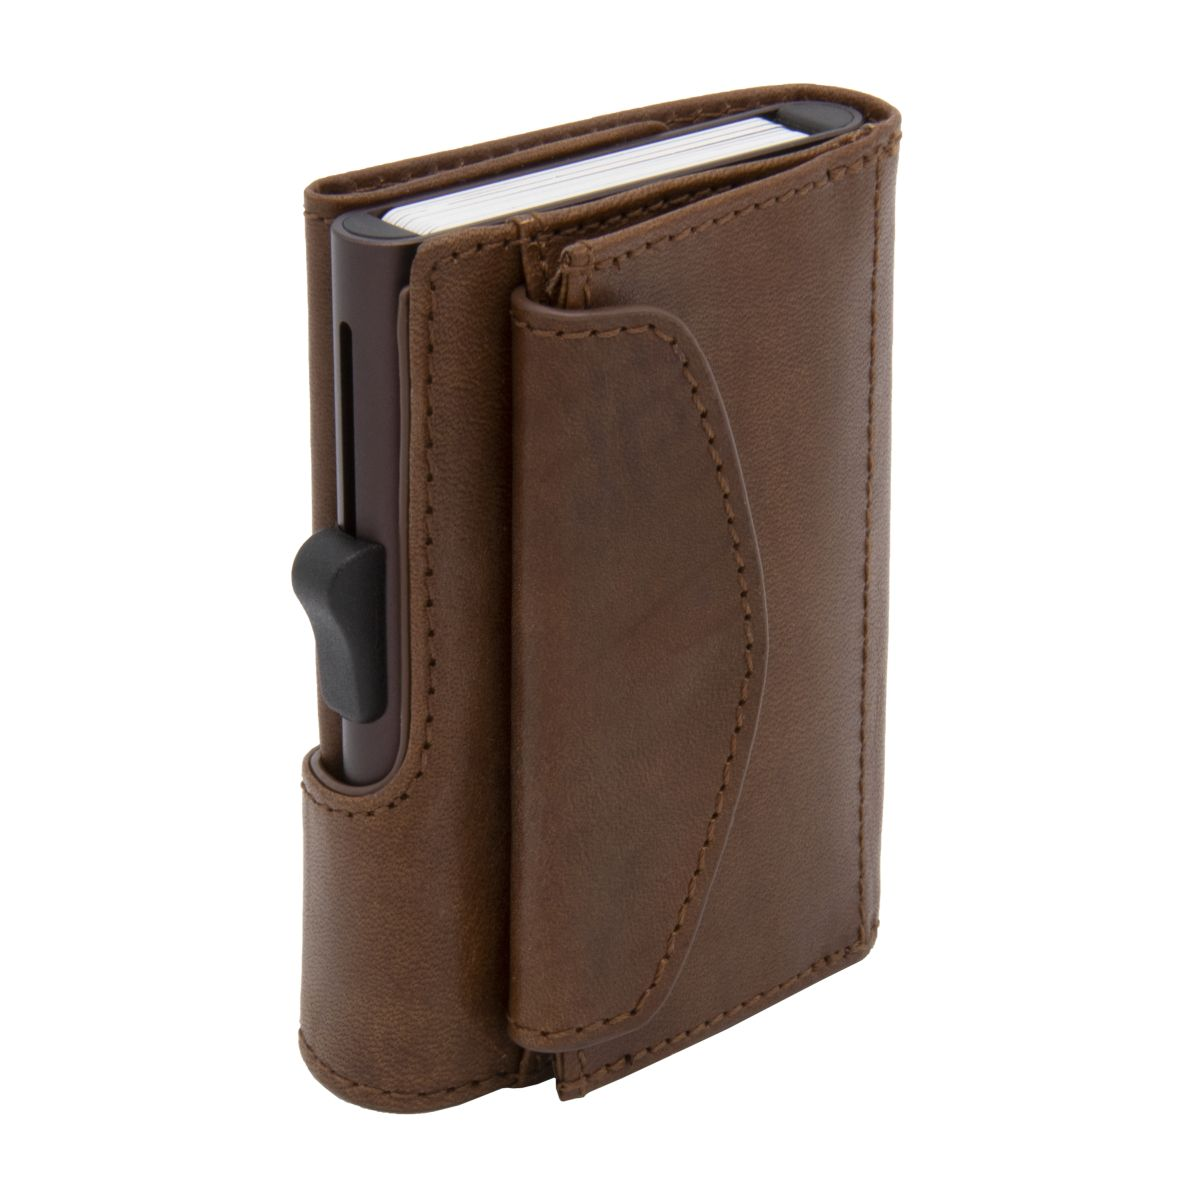 C-Secure XL Aluminum Wallet with Vegetable Genuine Leather and Coins Pocket - Brown